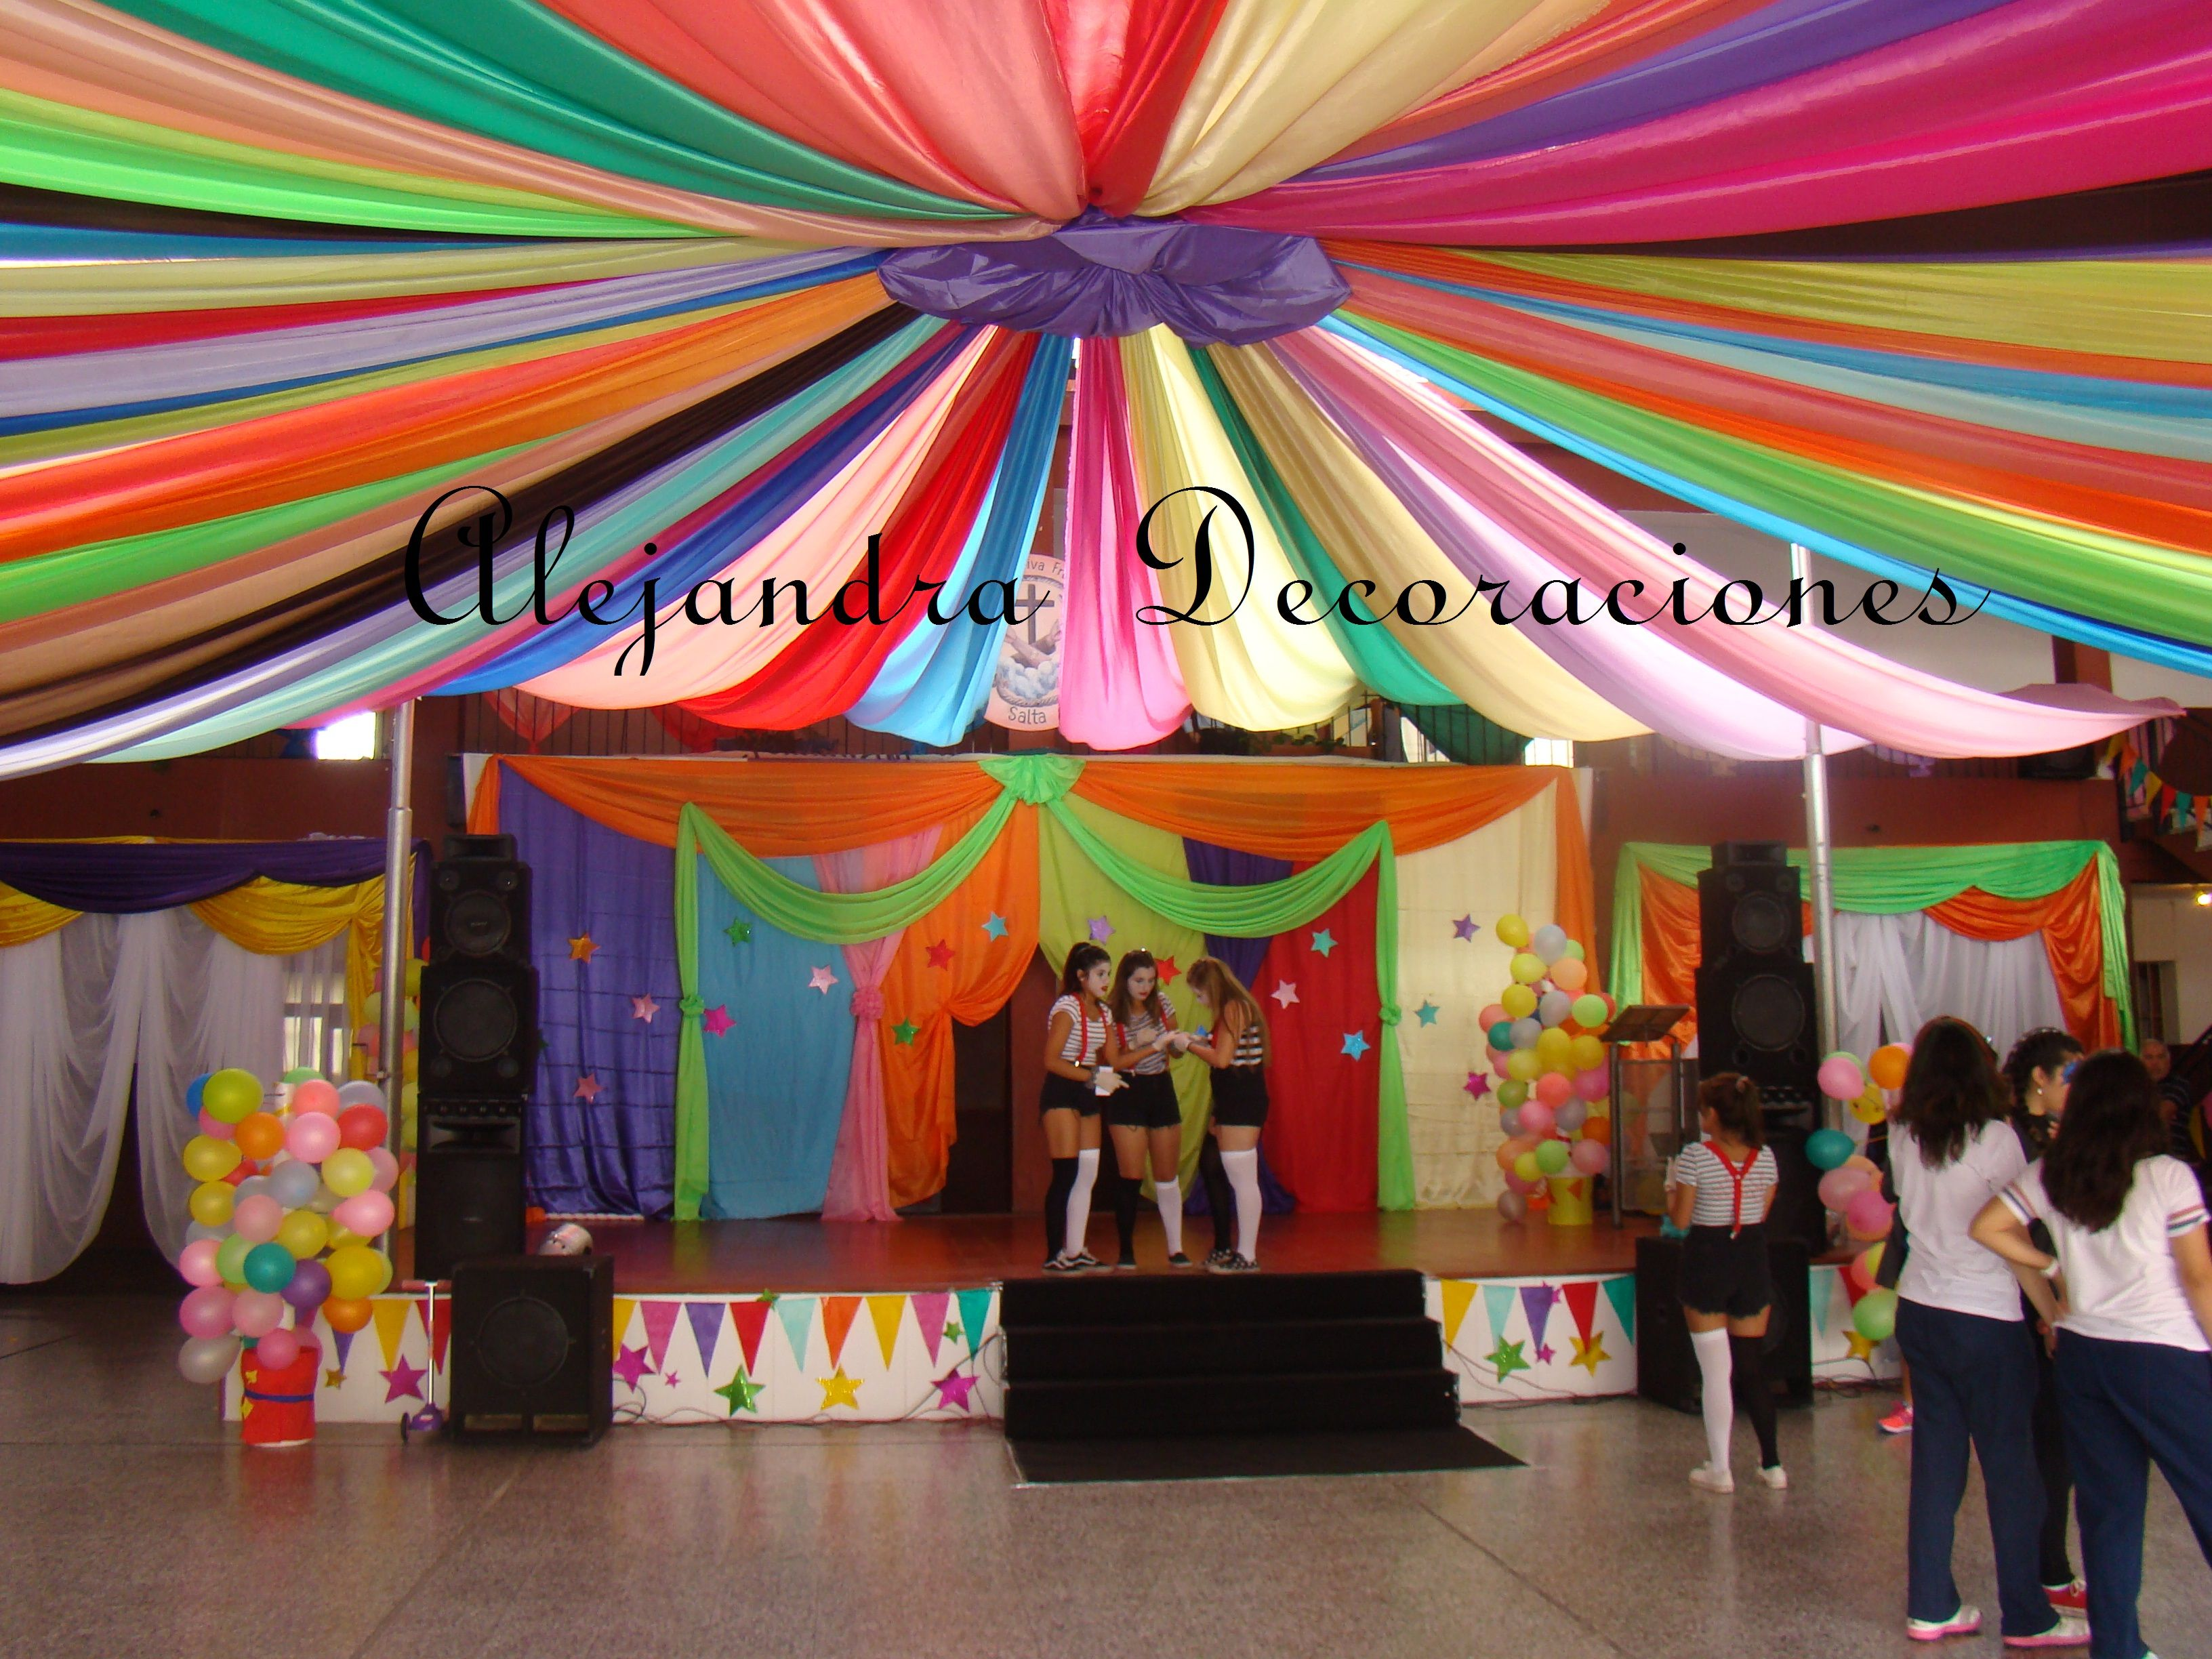 Decoracion circo decoracion con telas pinterest for Decoracion con telas